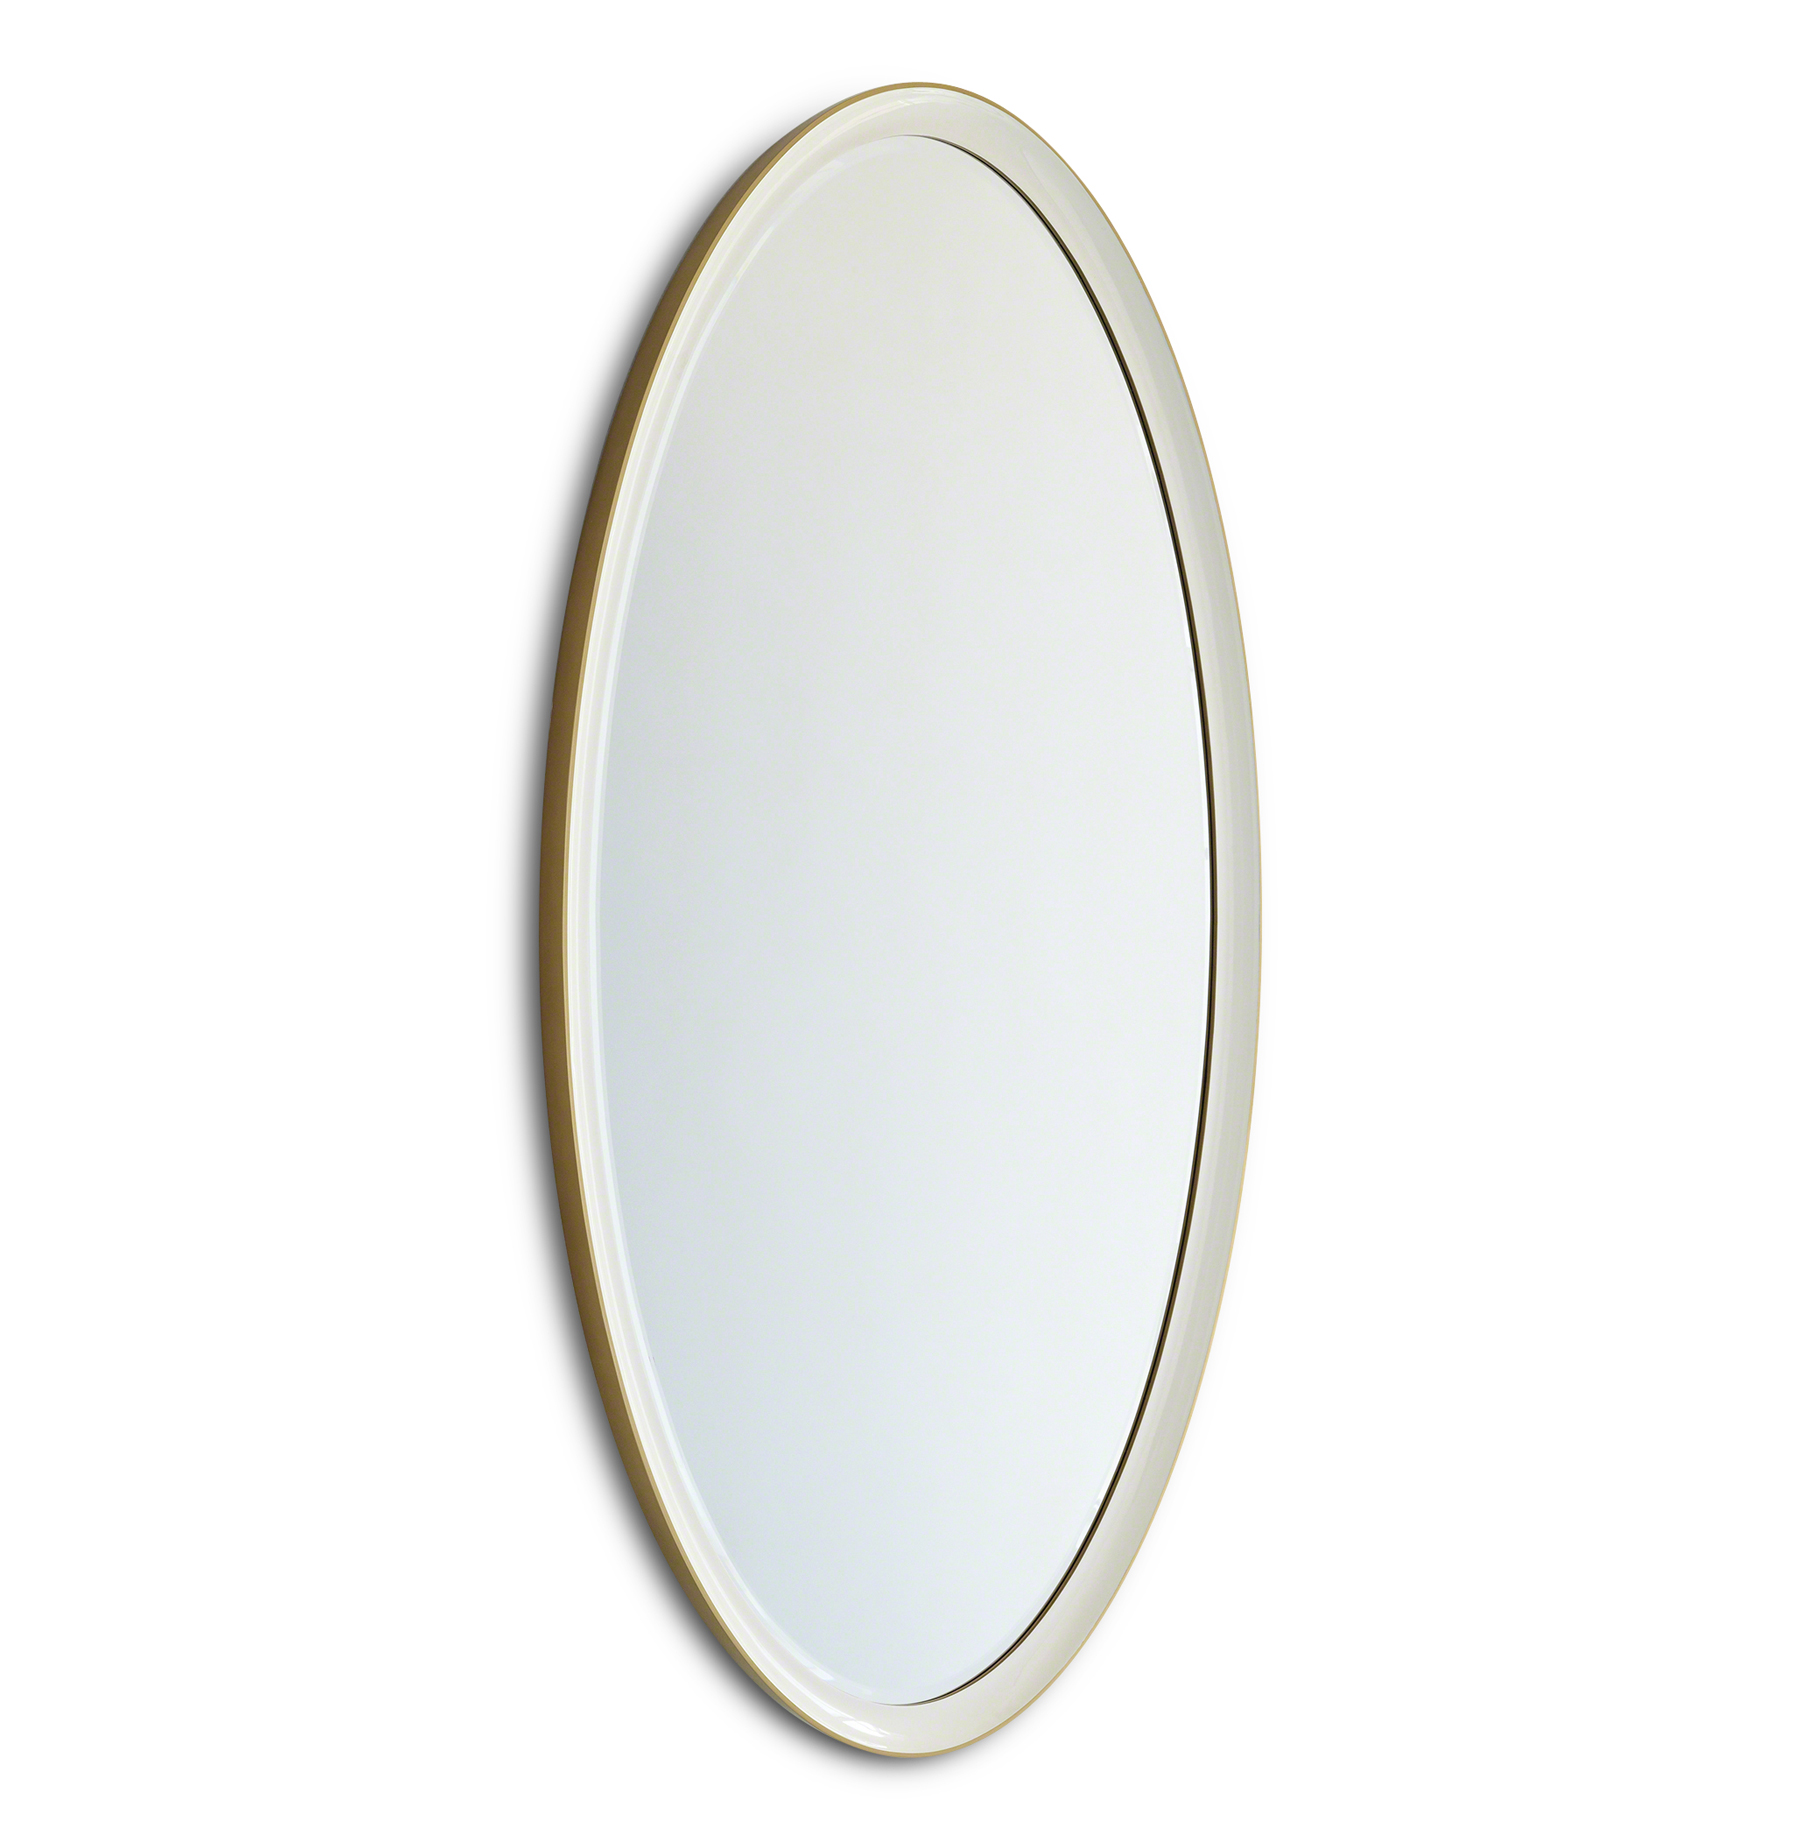 Hayworth Hollywood Regency White Gold Ombre Oval Wall Mirror - 63 Inch